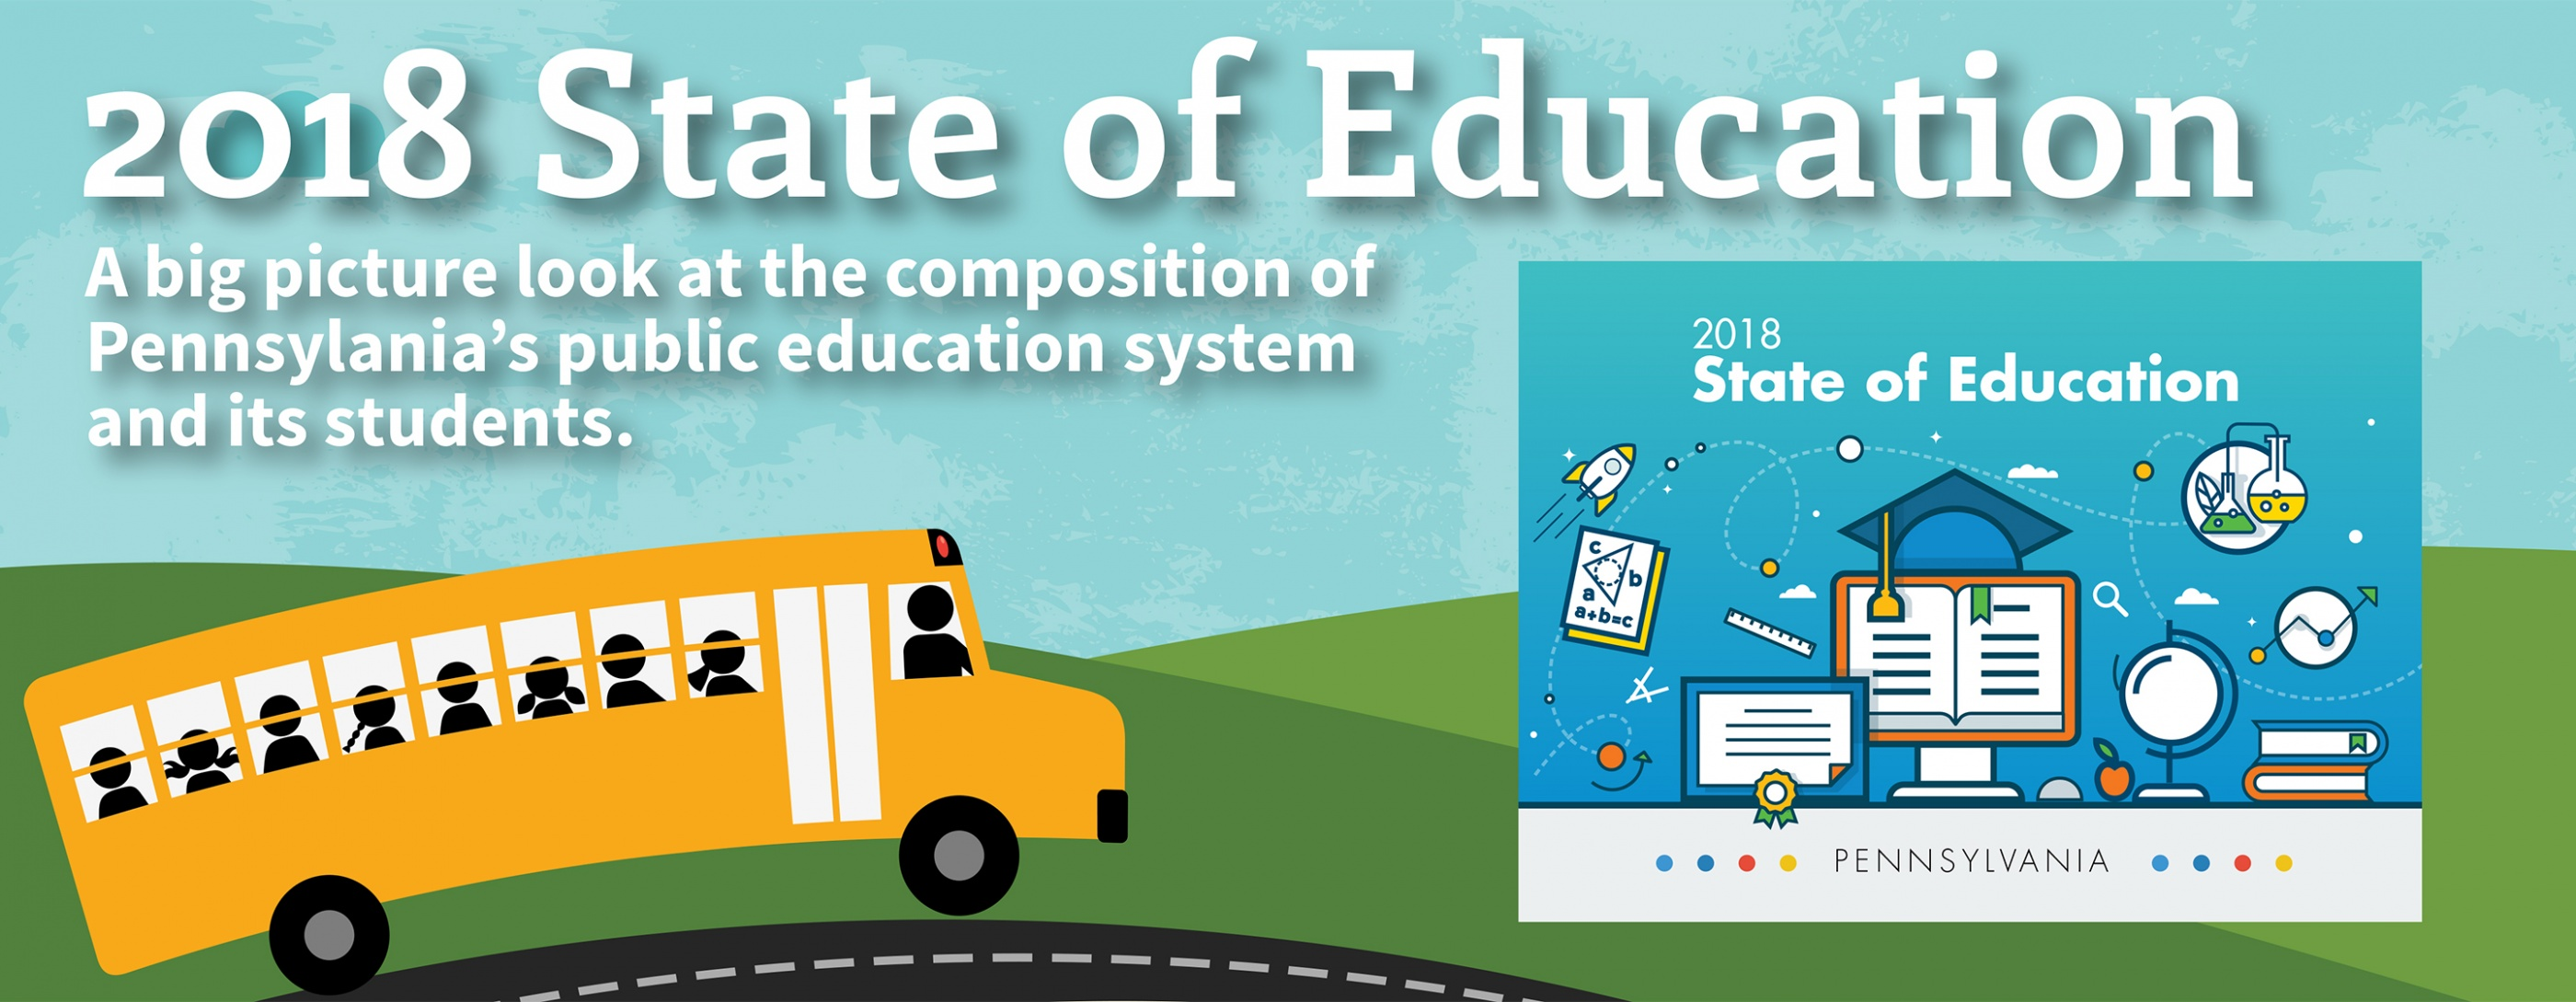 2018 State of Education Report